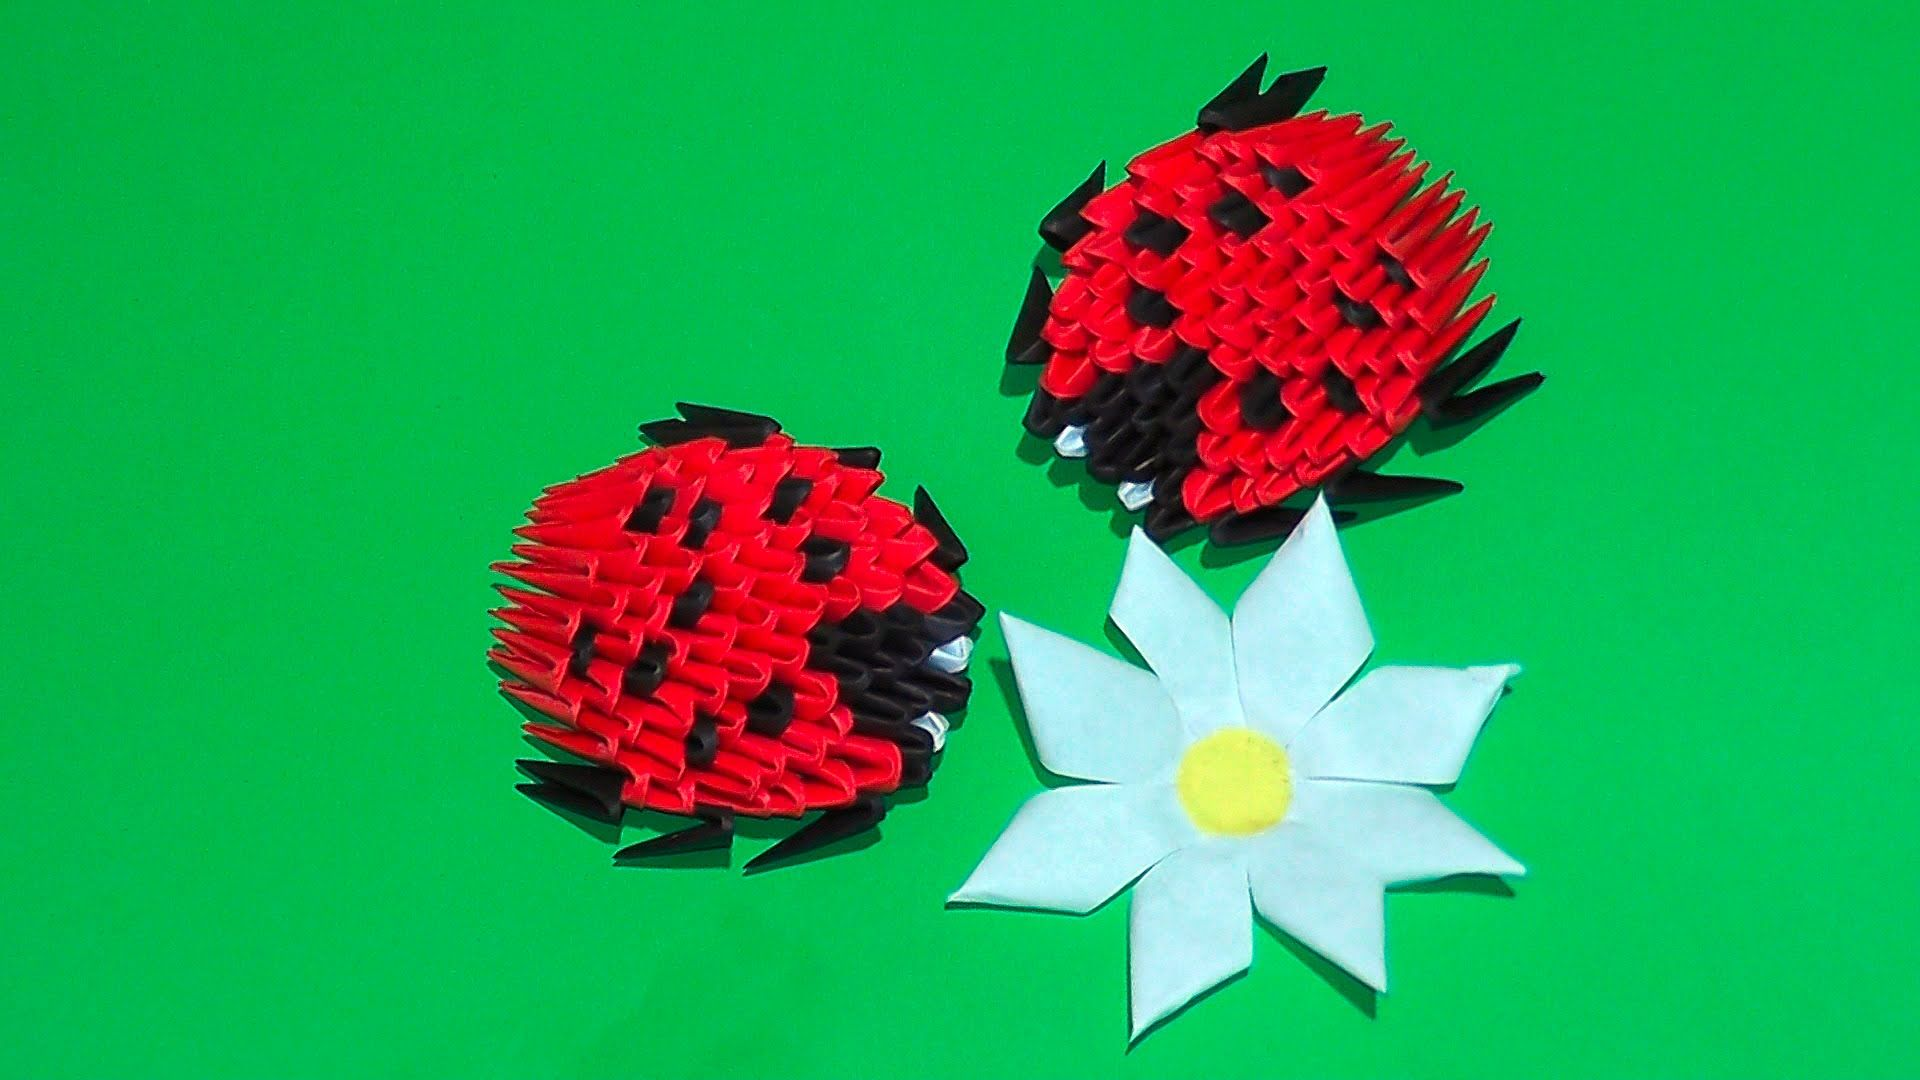 3d origami ladybug tutorial for beginners origami 3d origami ladybug tutorial for beginners jeuxipadfo Image collections